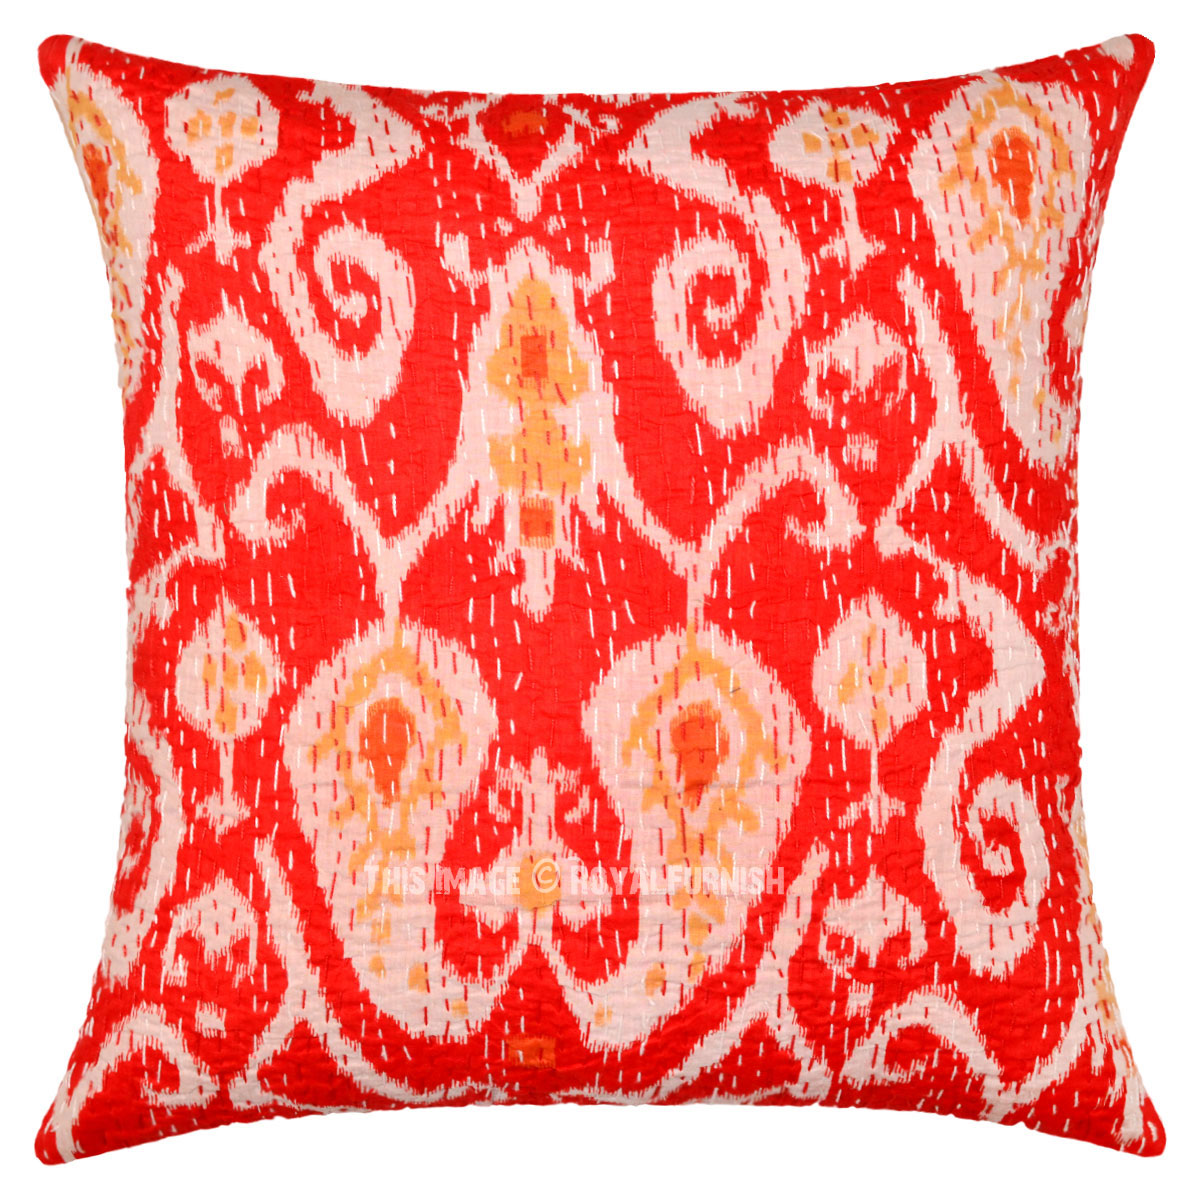 maroon fullxfull velvet zoom pillow listing red throw cover au cushion gold with il